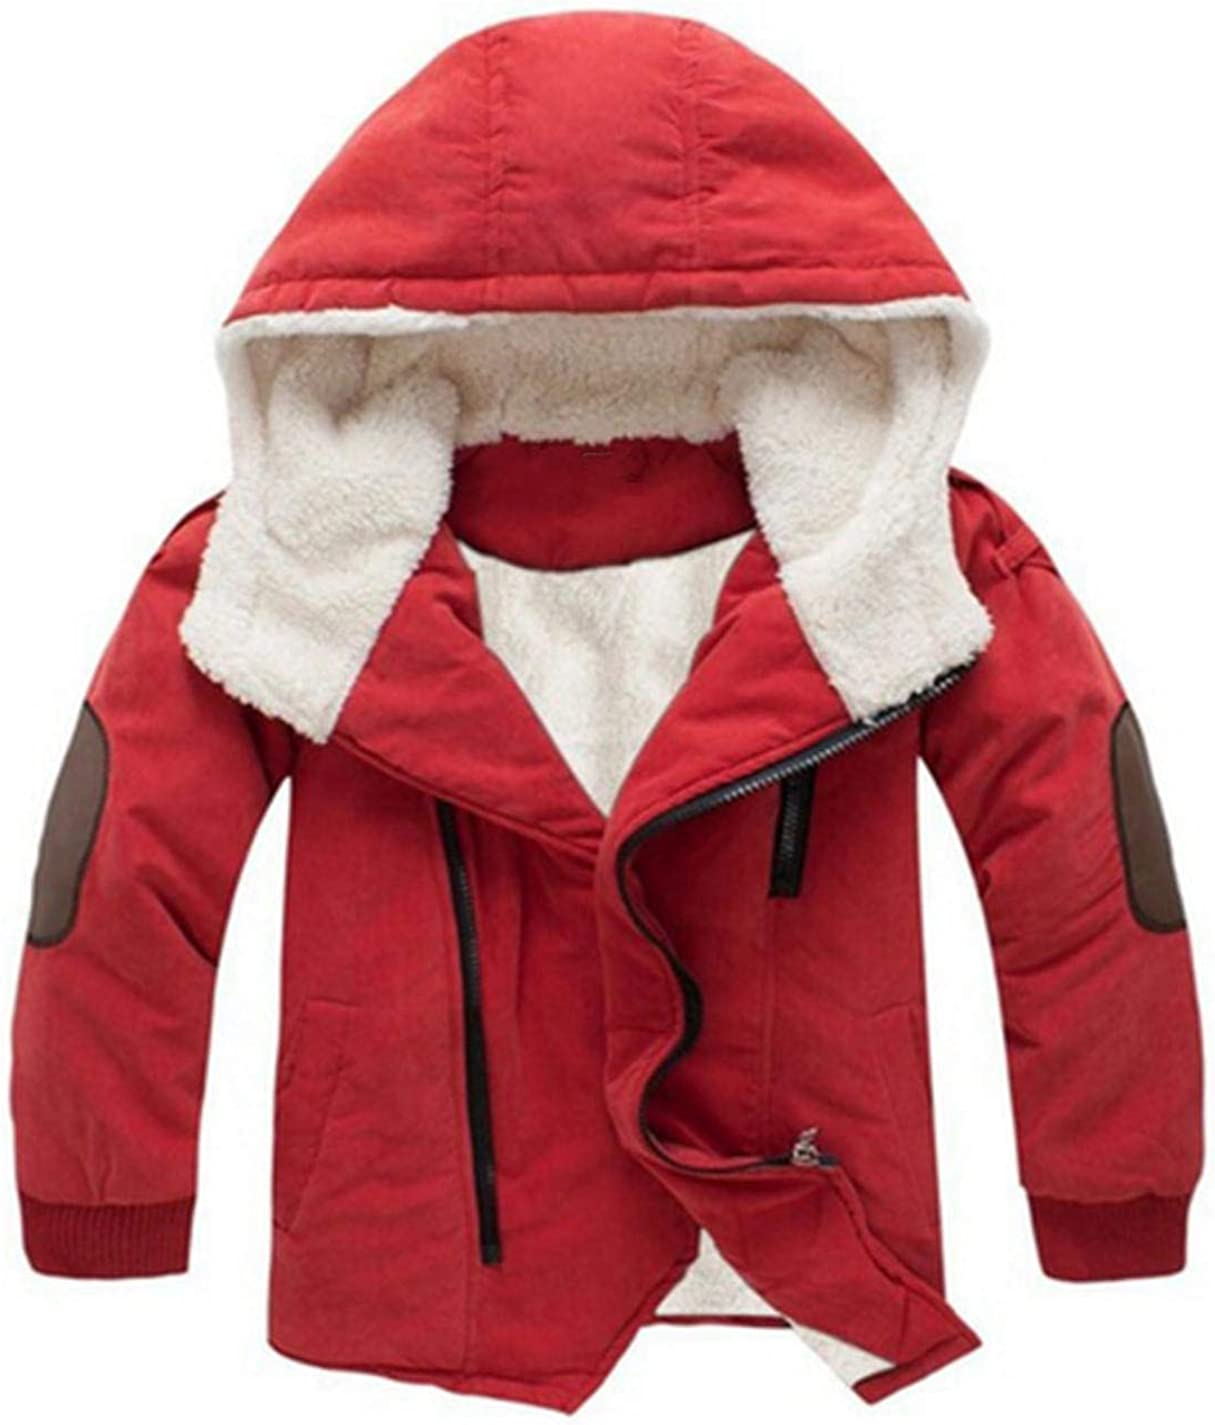 LzCxZDKN Boys Autumn Winter Jacket Children Clothing Hooded Outerwear Clothes